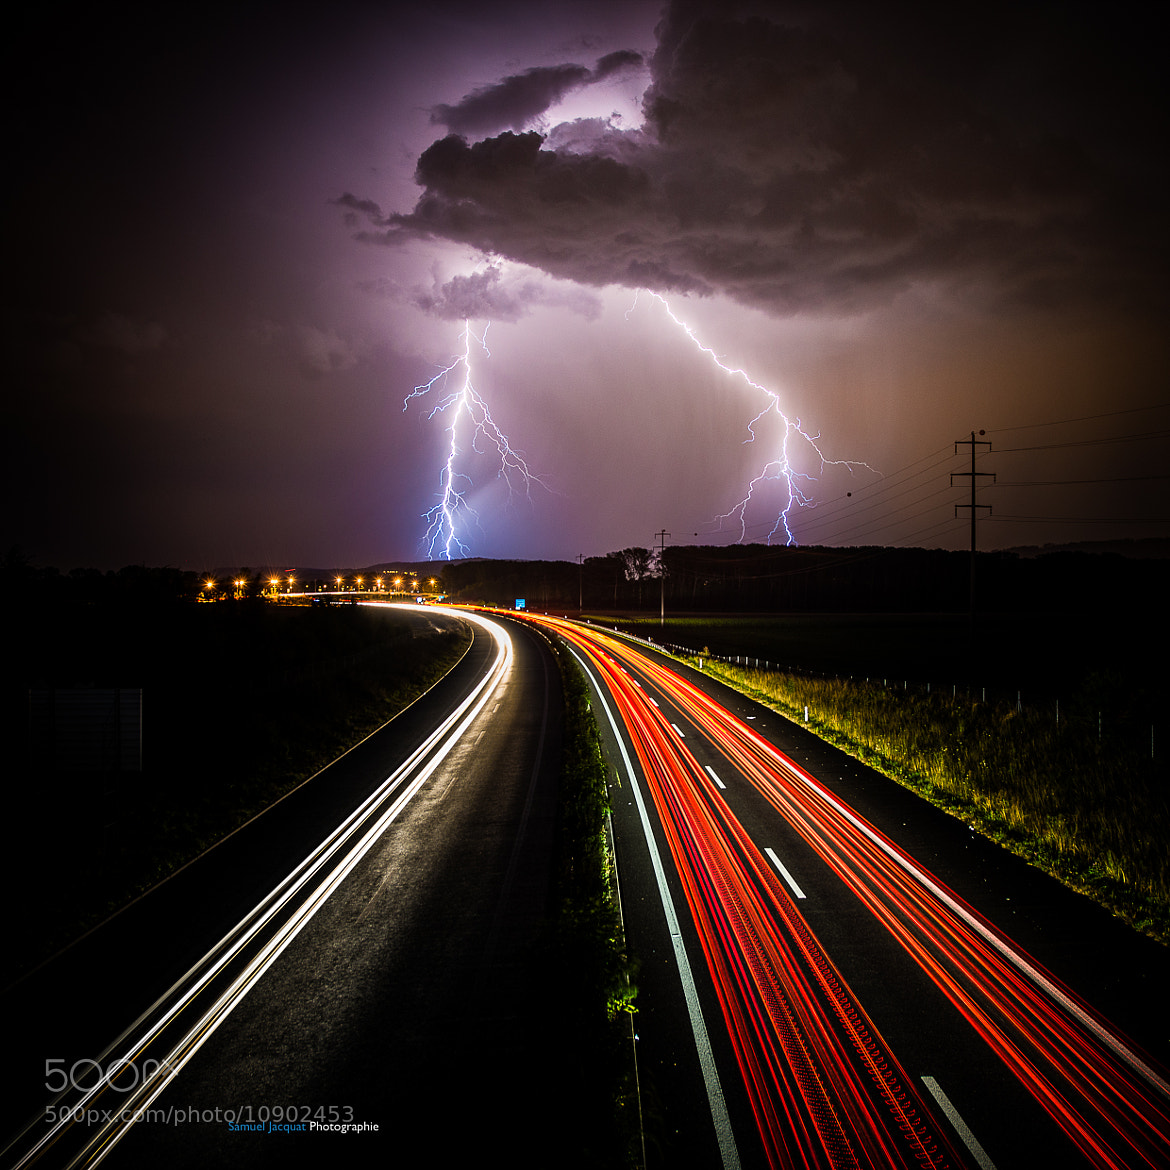 Photograph High Energy by Samuel Jacquat on 500px